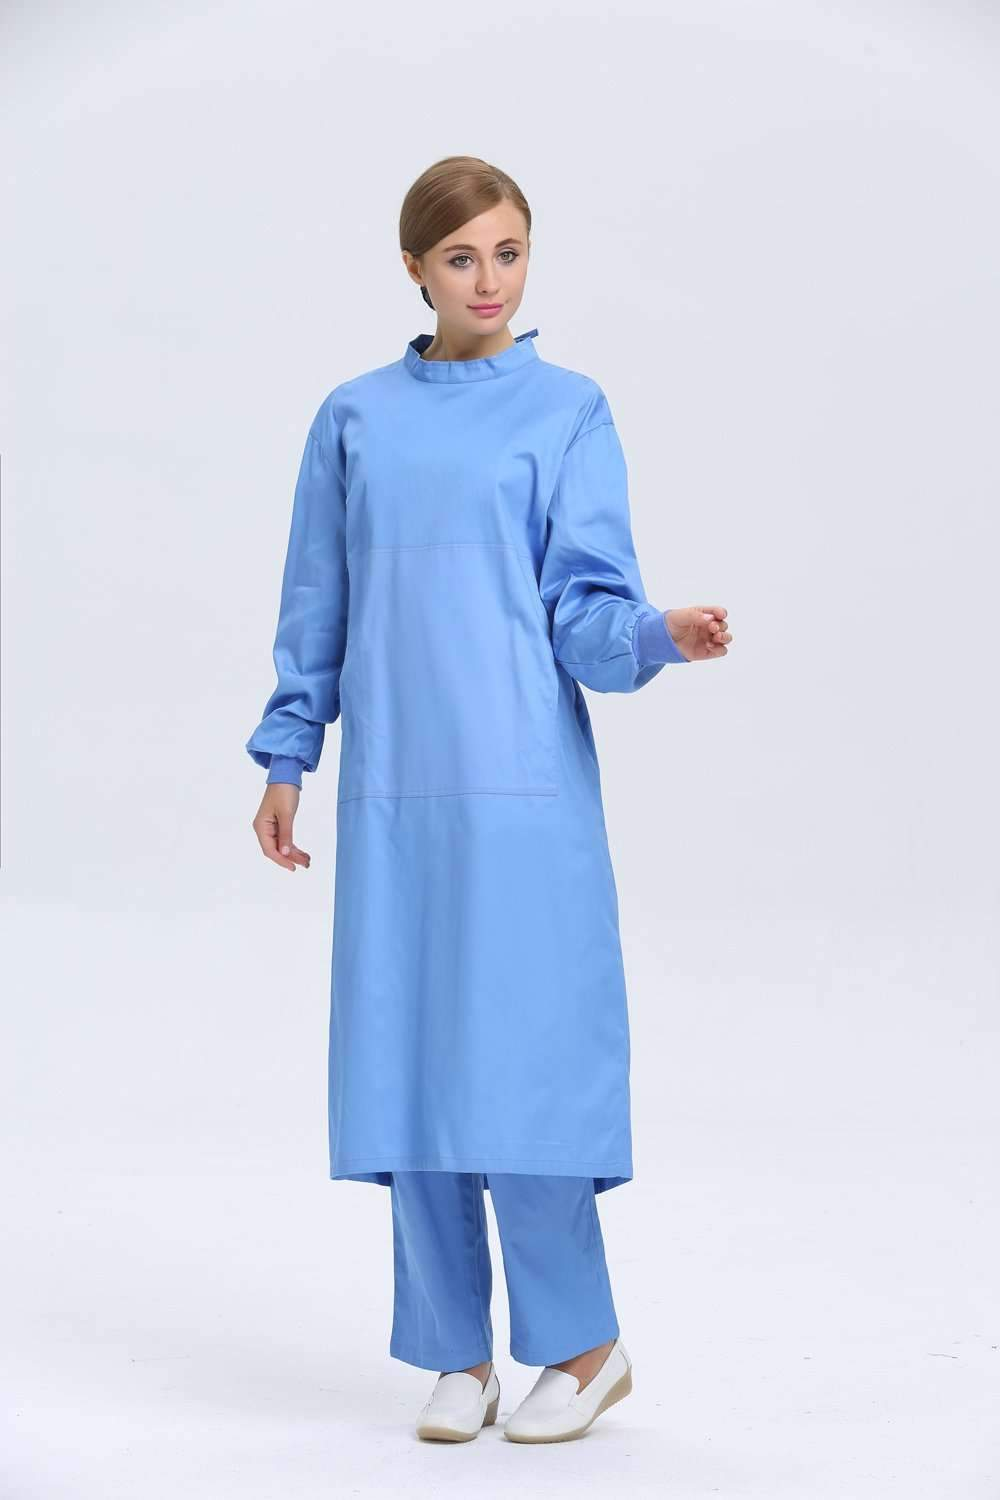 2015 OEM surgical gown cotton hospital uniform doctor nurse scrub ...